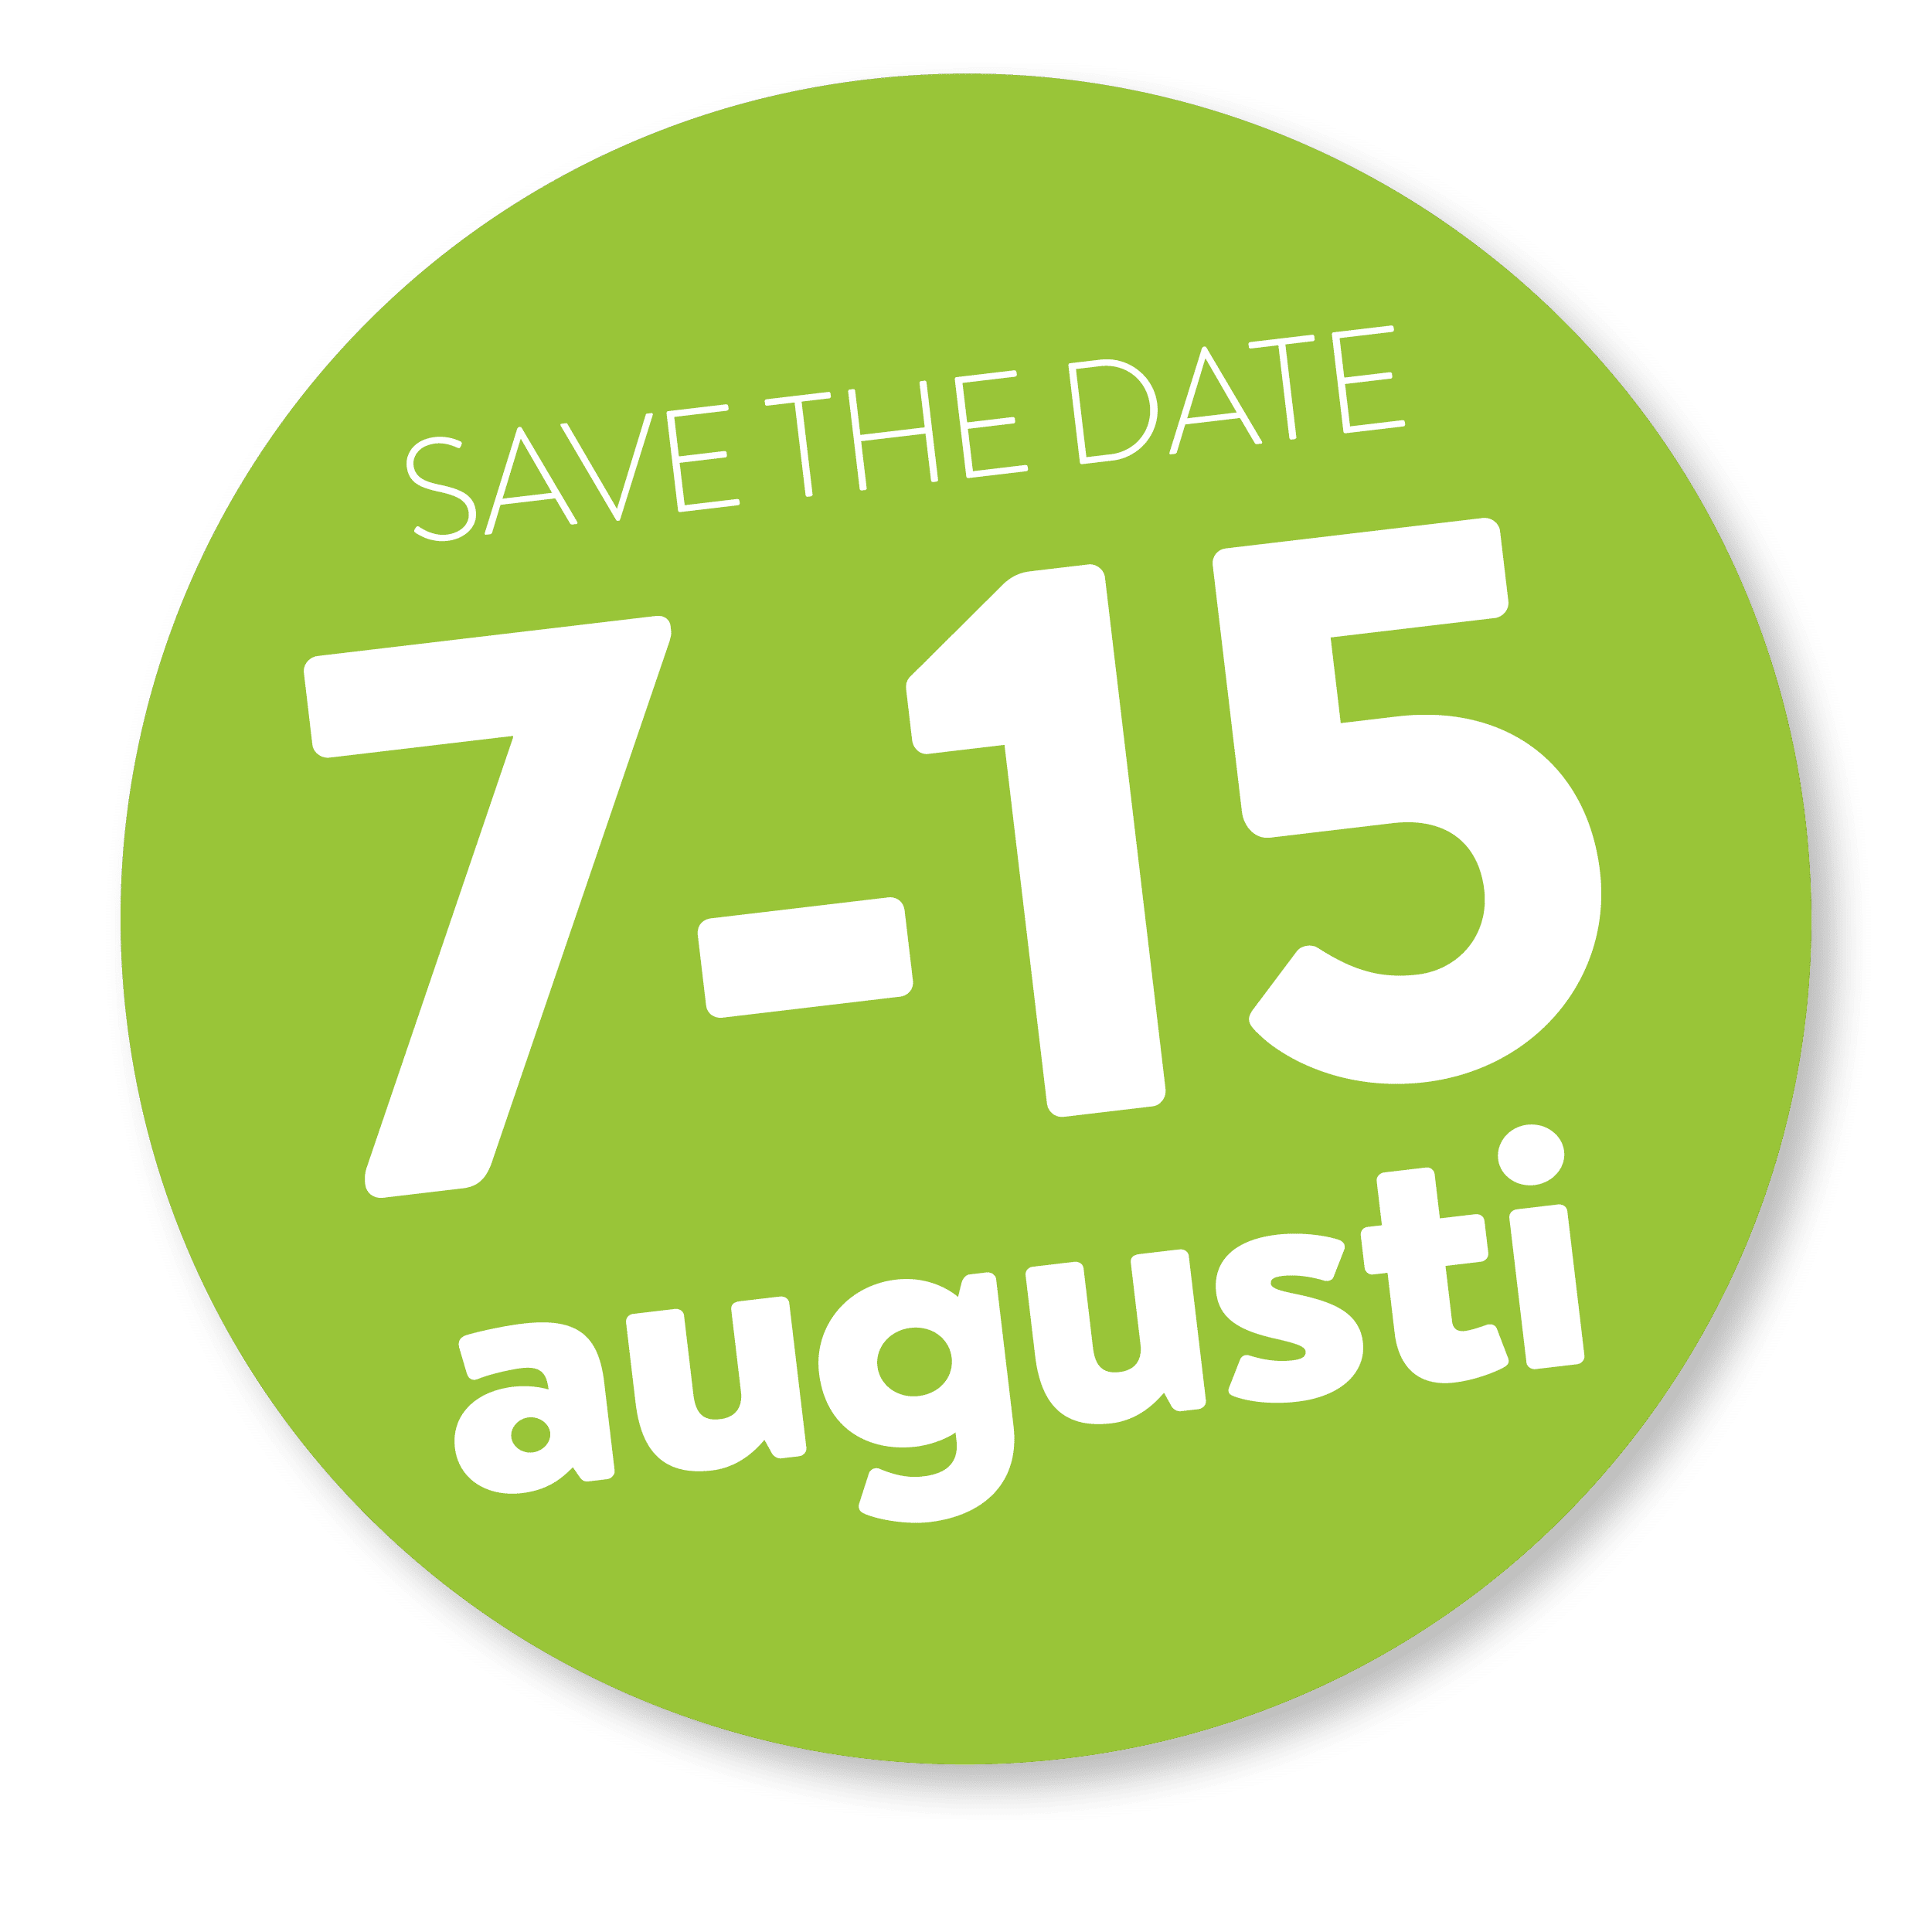 save the date 7-15 aug